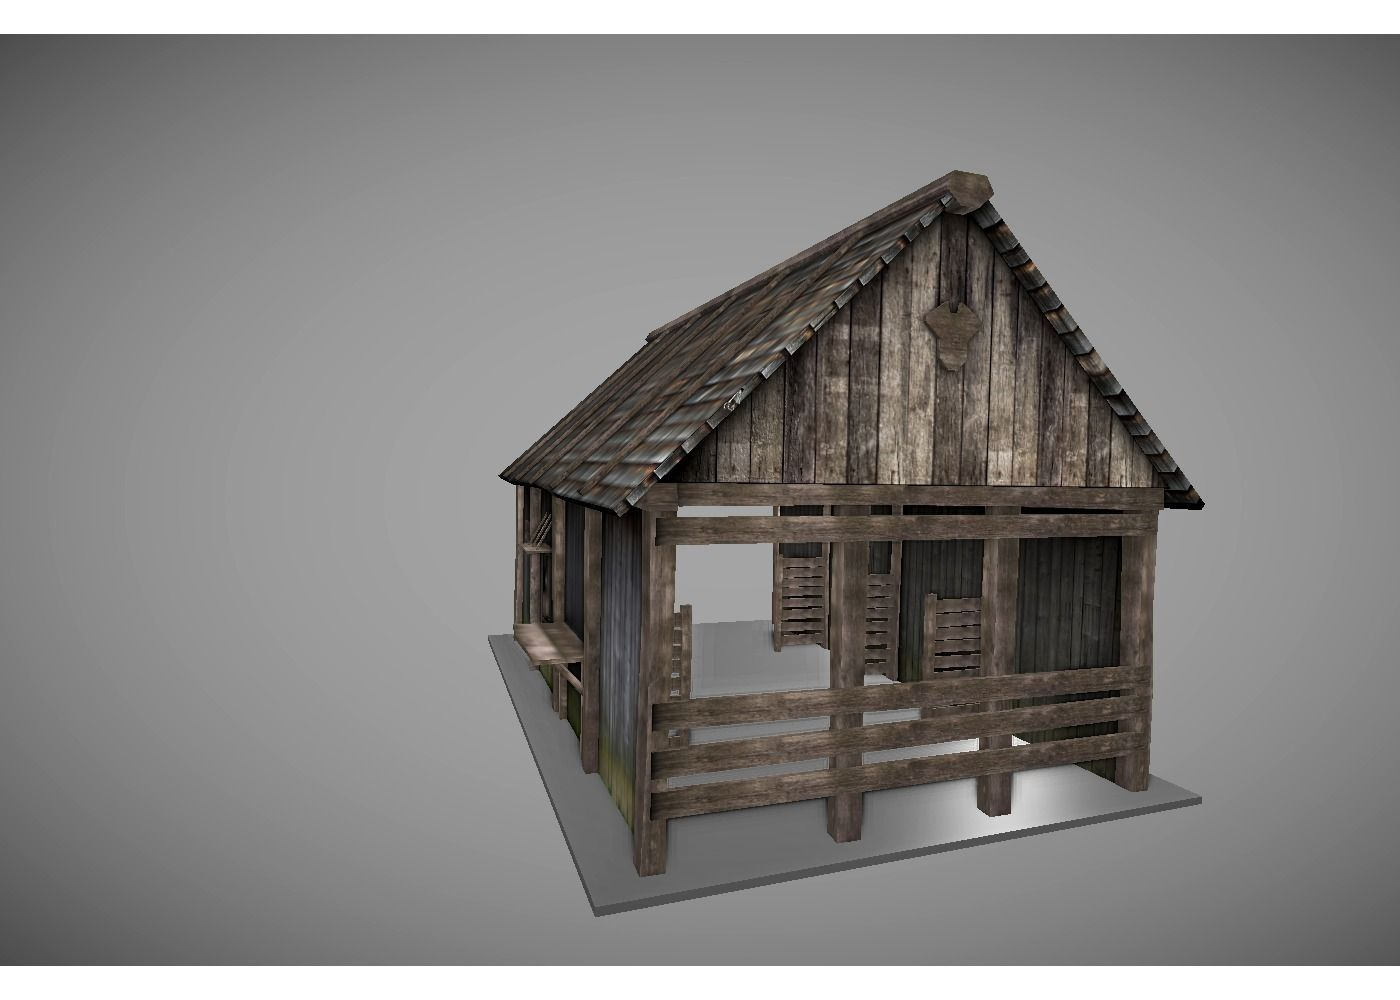 3d model low poly medieval house vr ar low poly obj for House 3d model